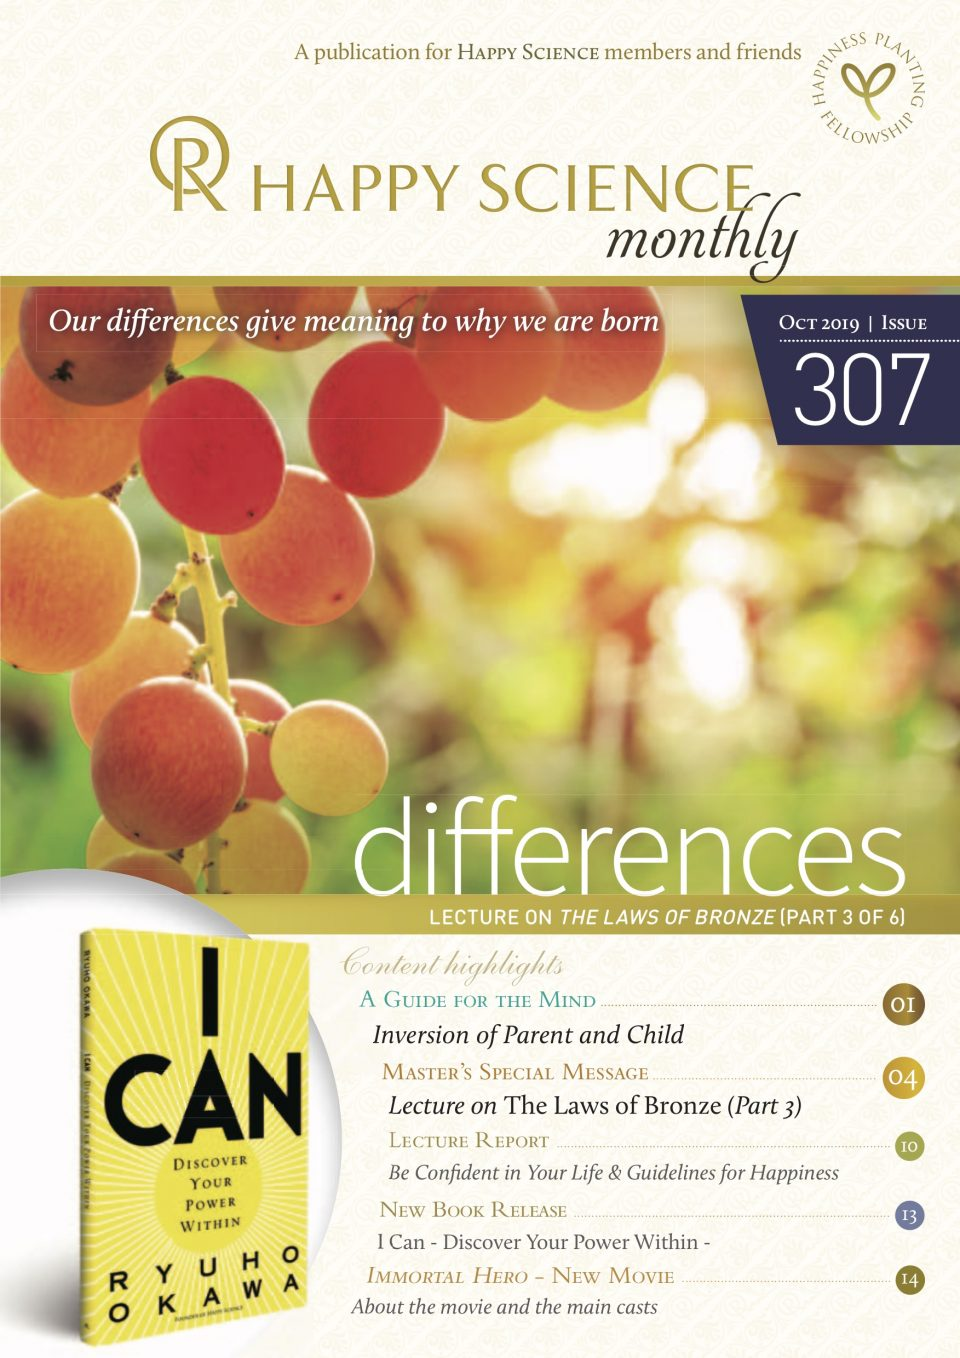 HAPPY SCIENCE Monthly 307 is released!